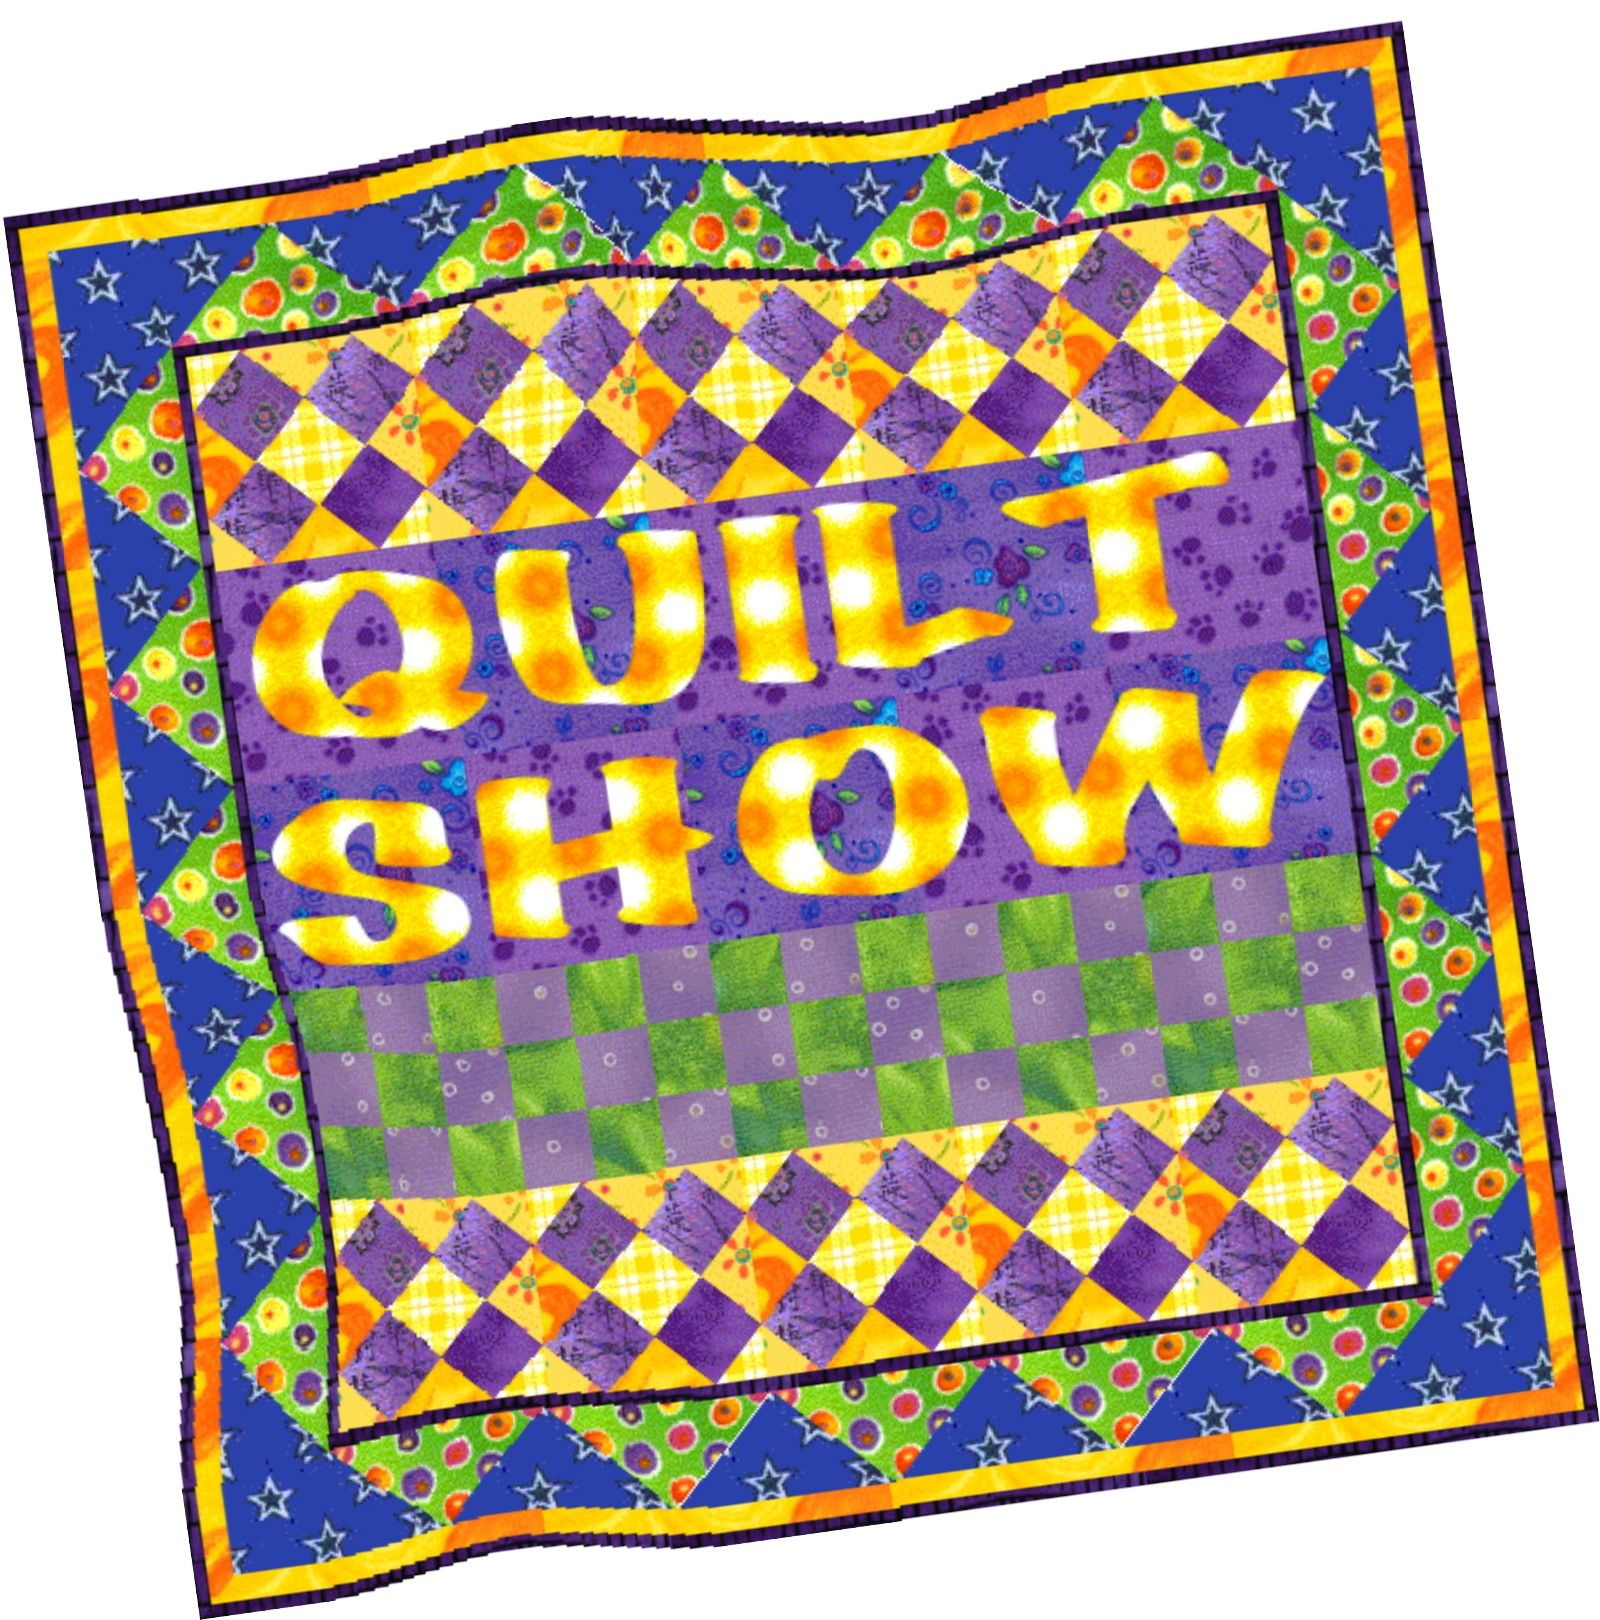 Image result for free quilt clipart